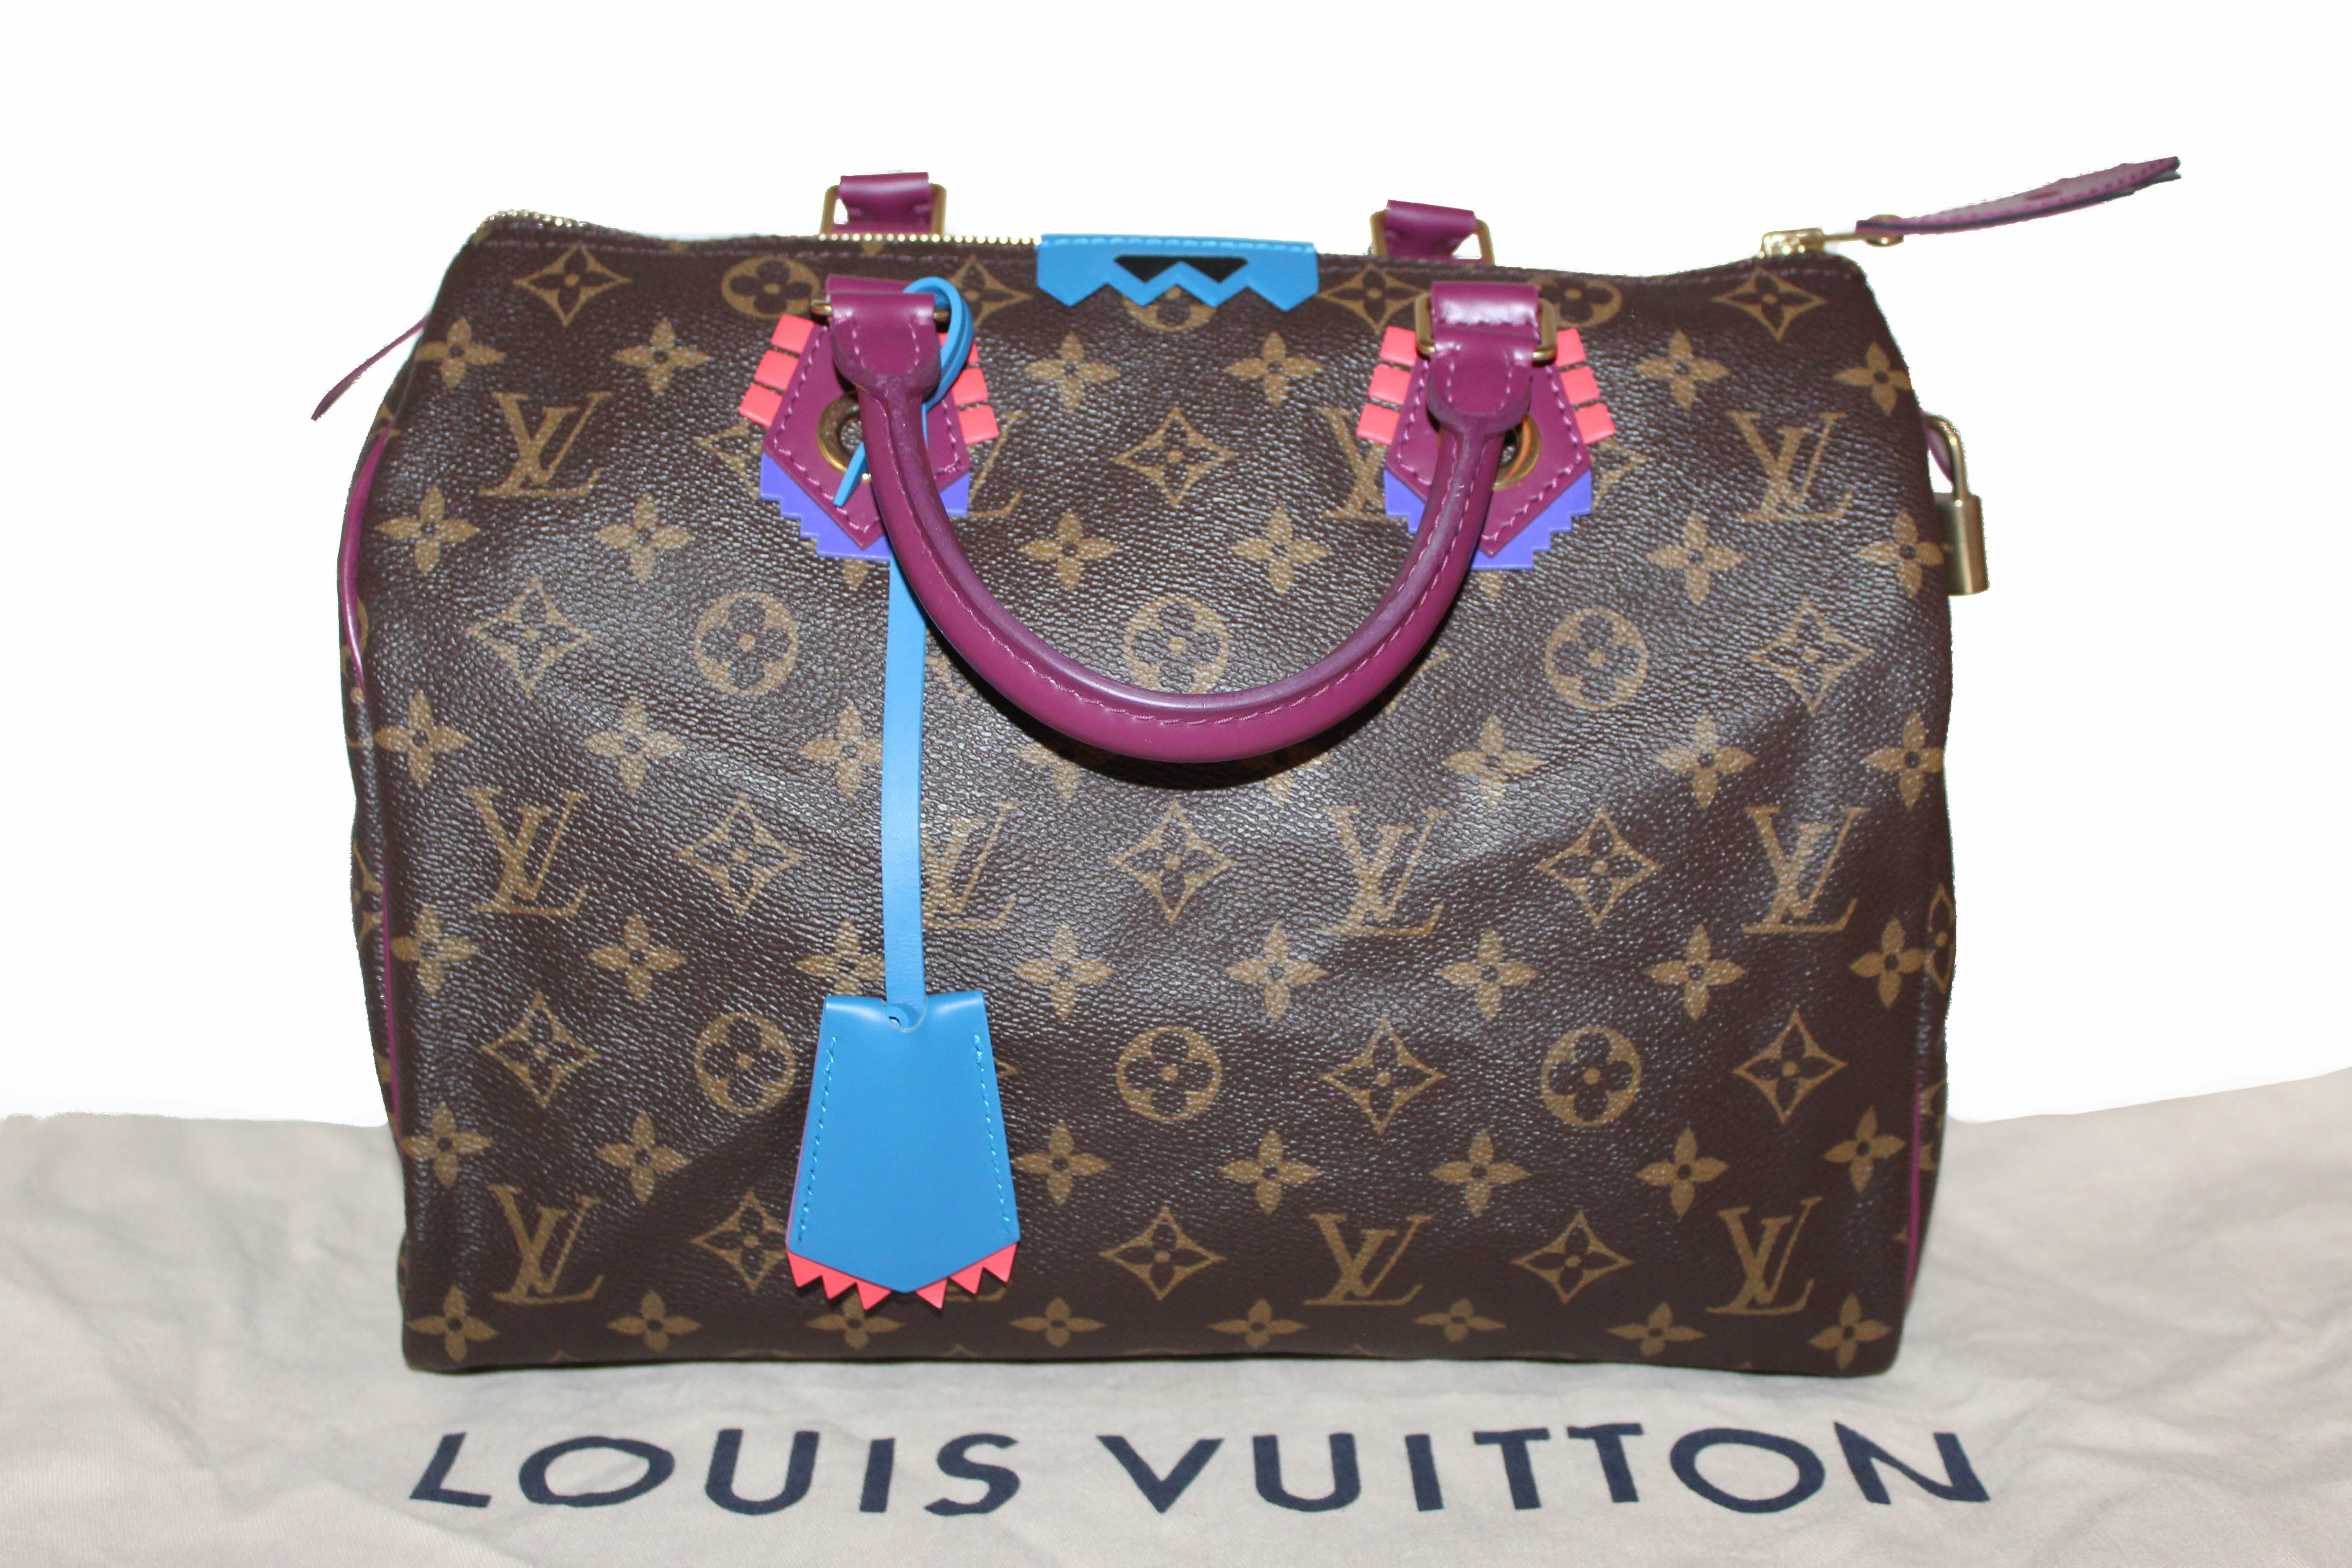 Authentic Louis Vuitton Limited Edition Totem Monogram Canvas Speedy 30 Handbag